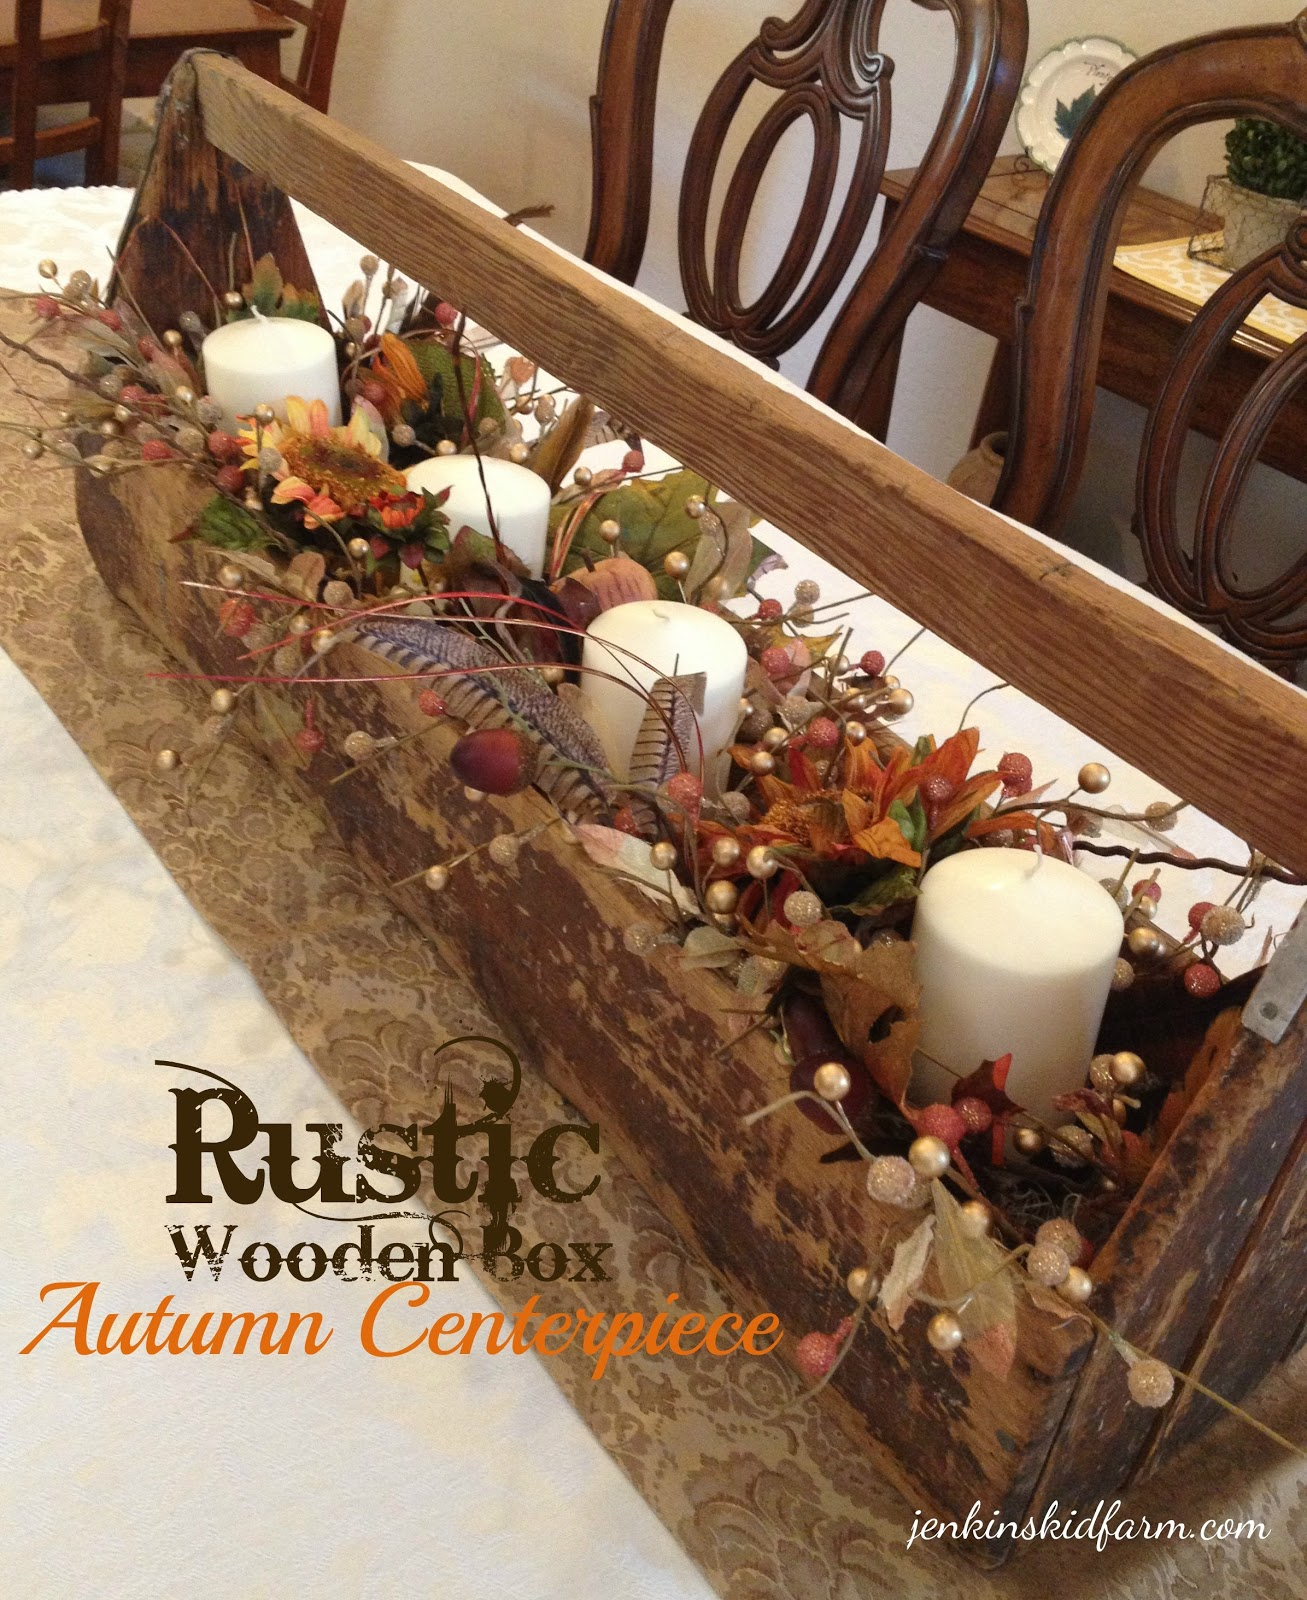 Jenkins kid farm the rustic wooden box autumn centerpiece for Rustic dining table centerpieces